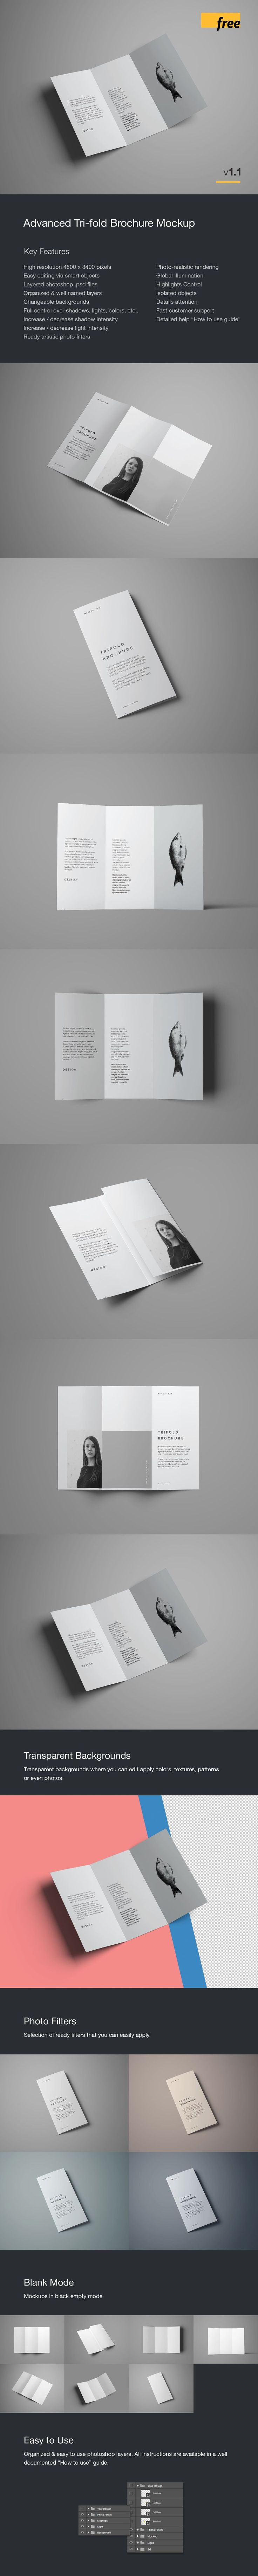 Advanced Trifold Brochure Mockup An advanced premium trifold brochure mockup in a standard size of a folded A4. The mockup has 7 different angles a...